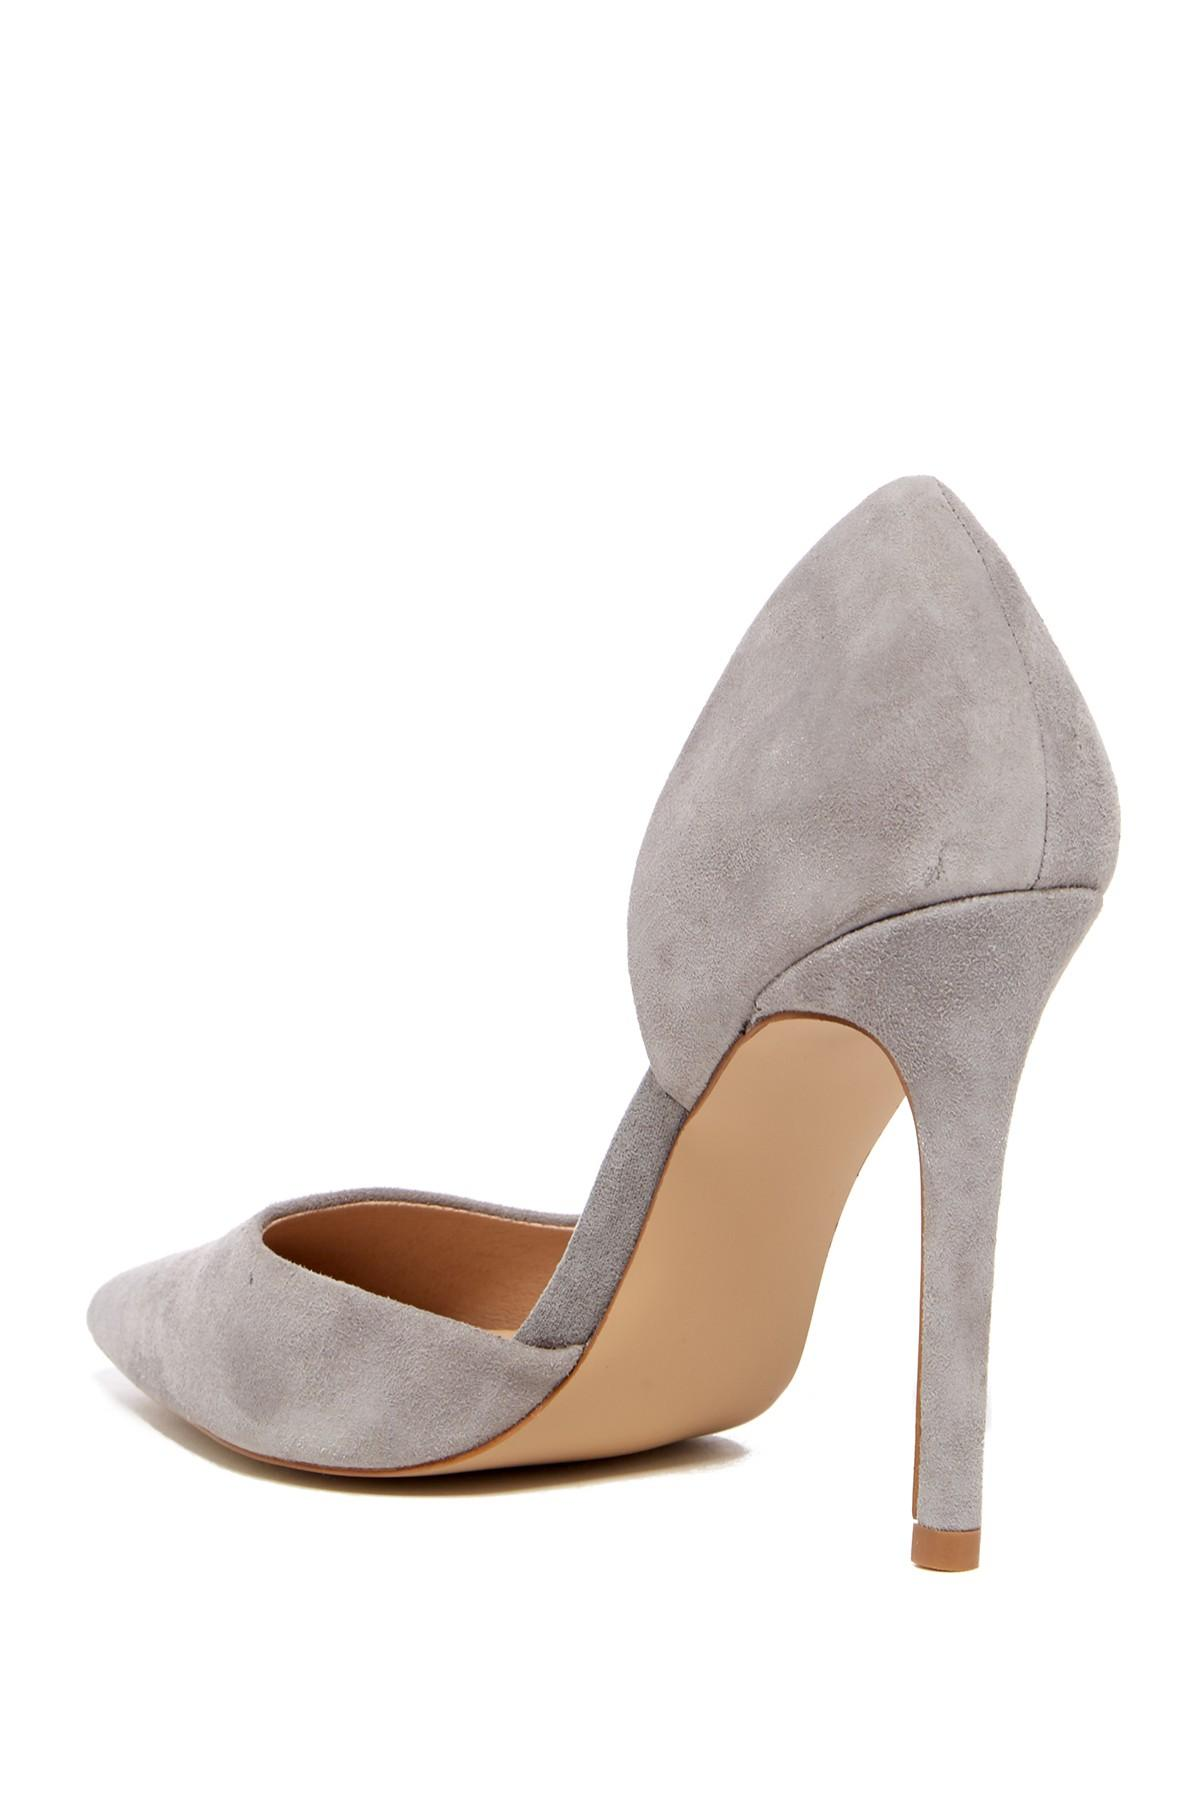 0103292feeb Lyst - Steve Madden Felicity Suede D orsay Pump in Gray